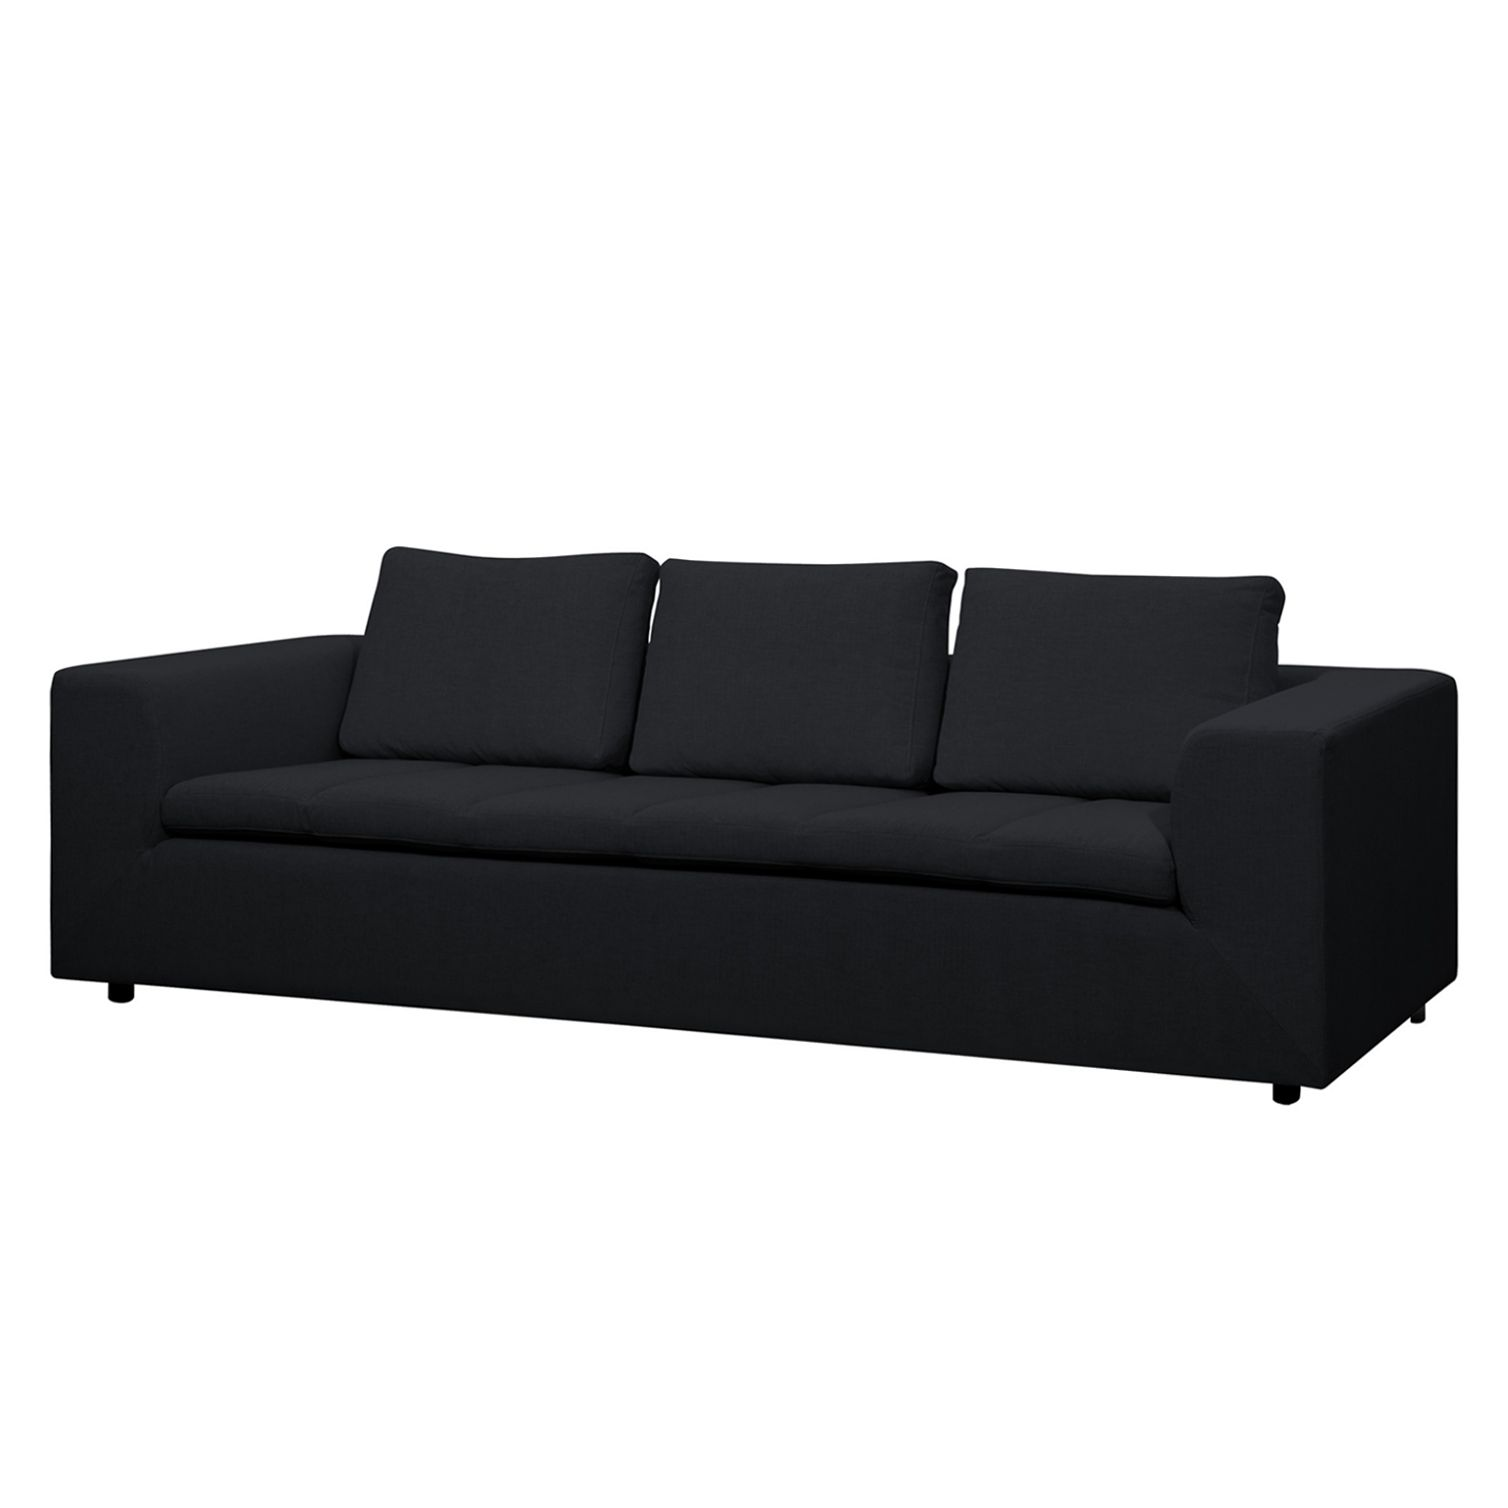 Sofa Brooklyn (3-Sitzer) Webstoff - Stoff Saia Anthrazit